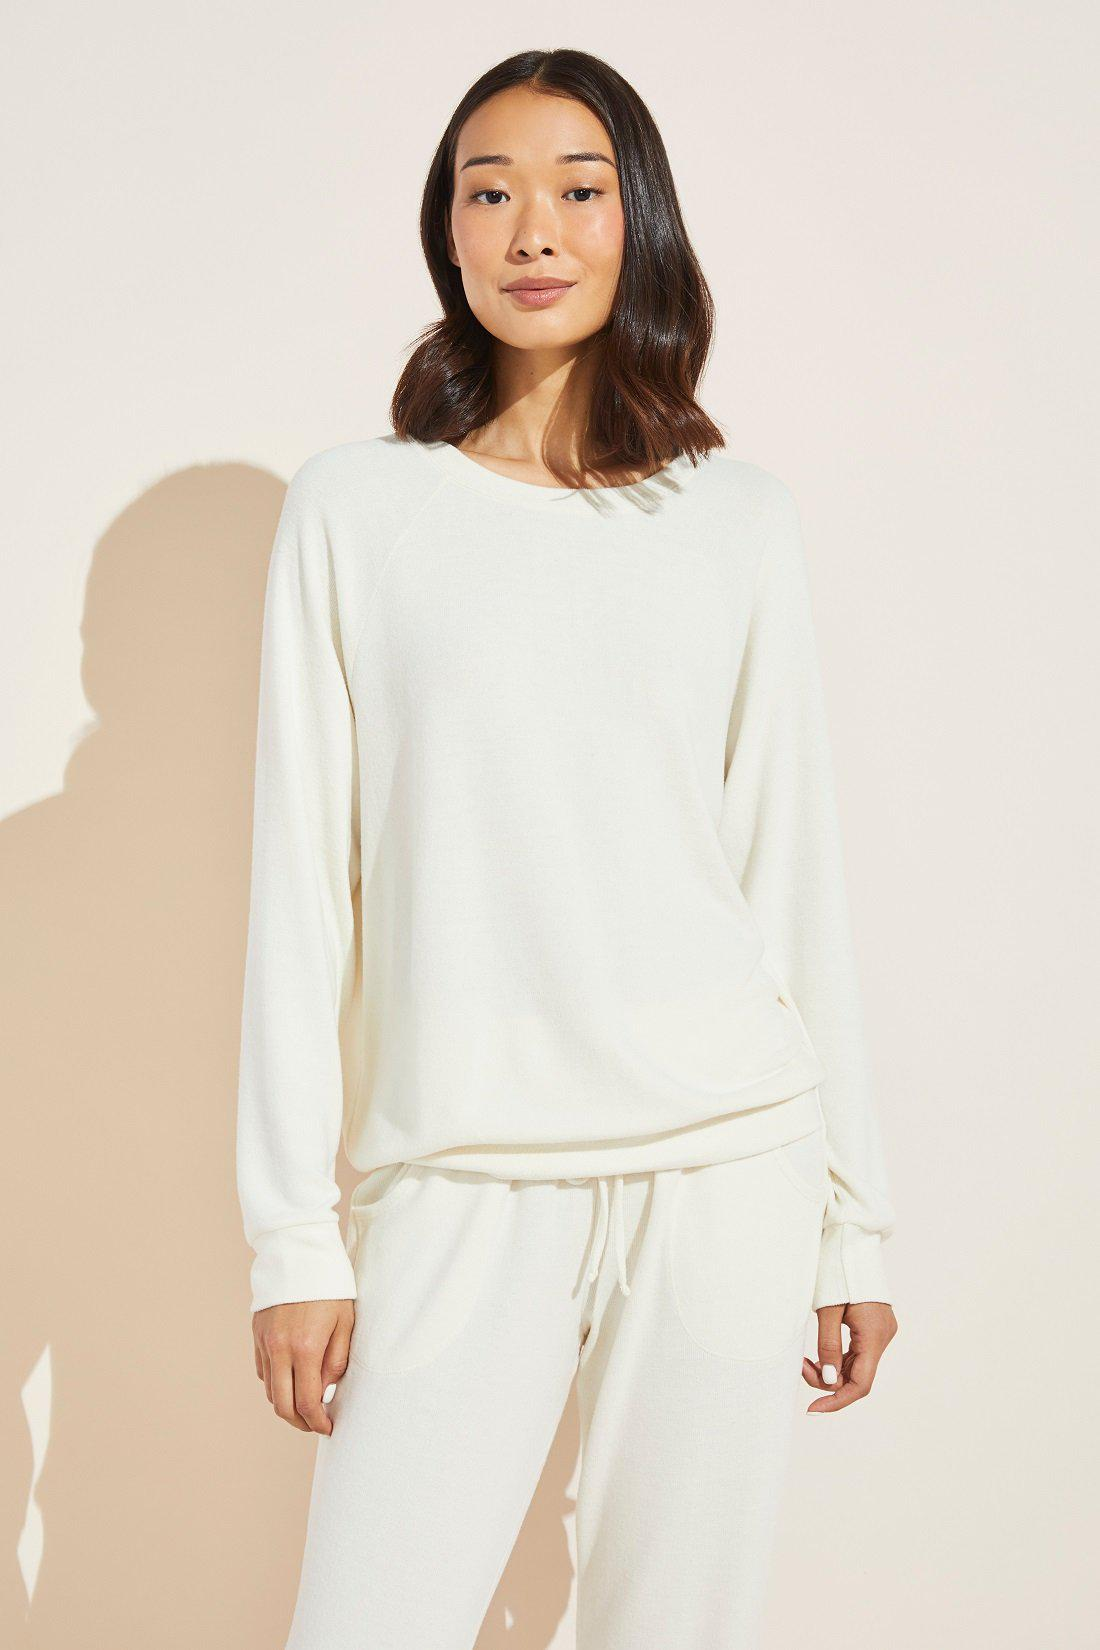 Cozy Time Brushed Modal Top - Bone